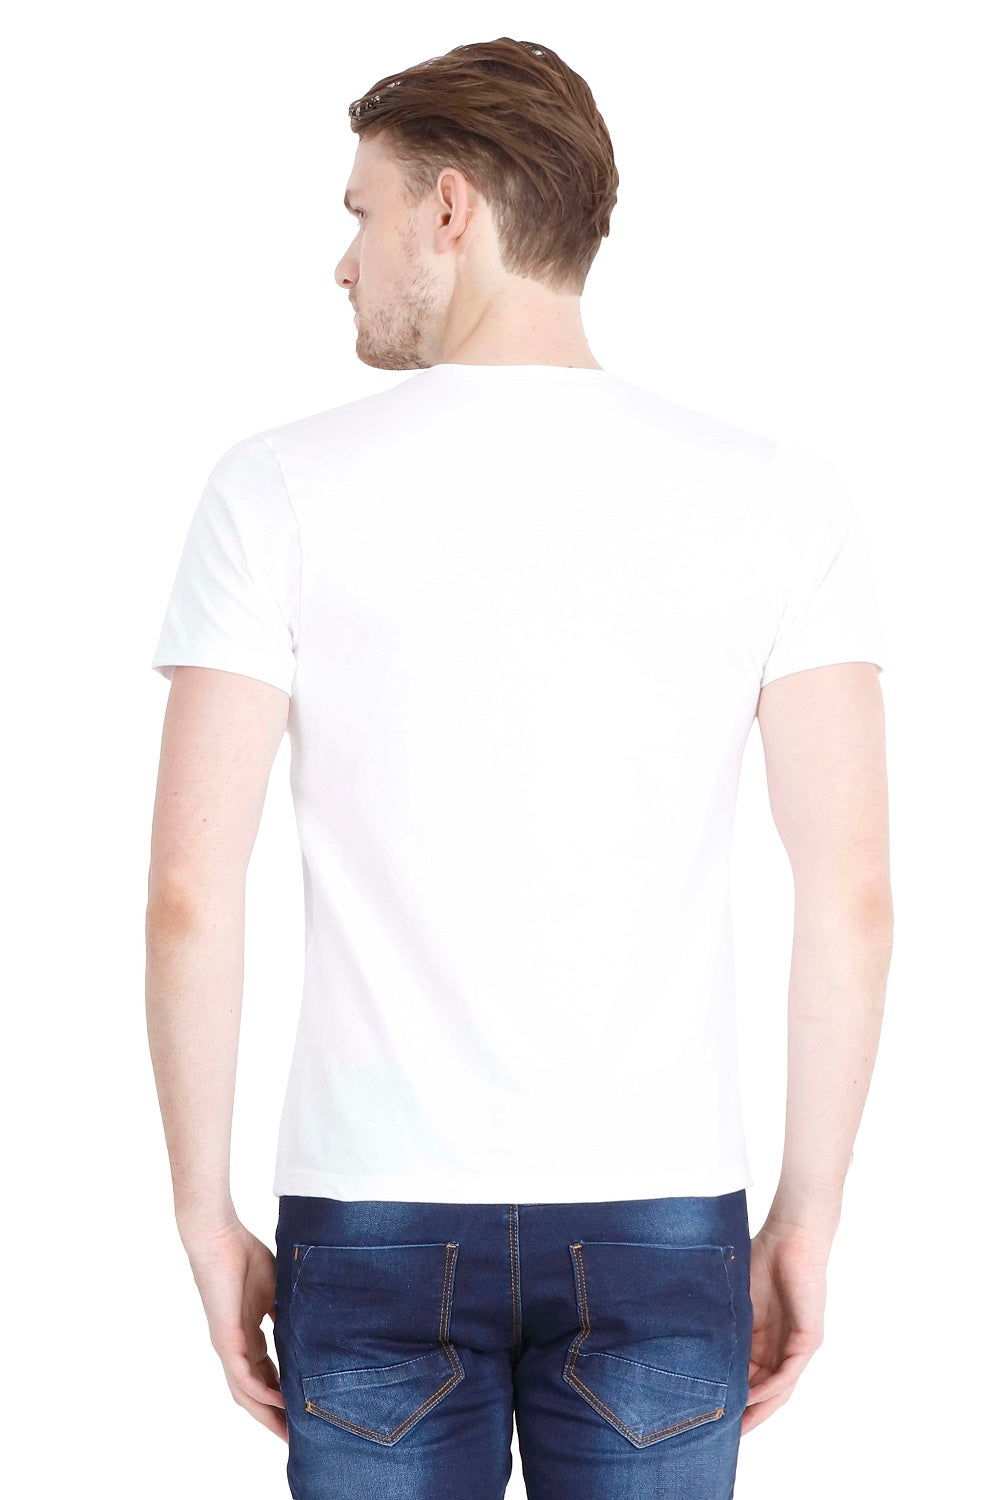 Hunt and Howe Men's White Printed Round Neck T-Shirt